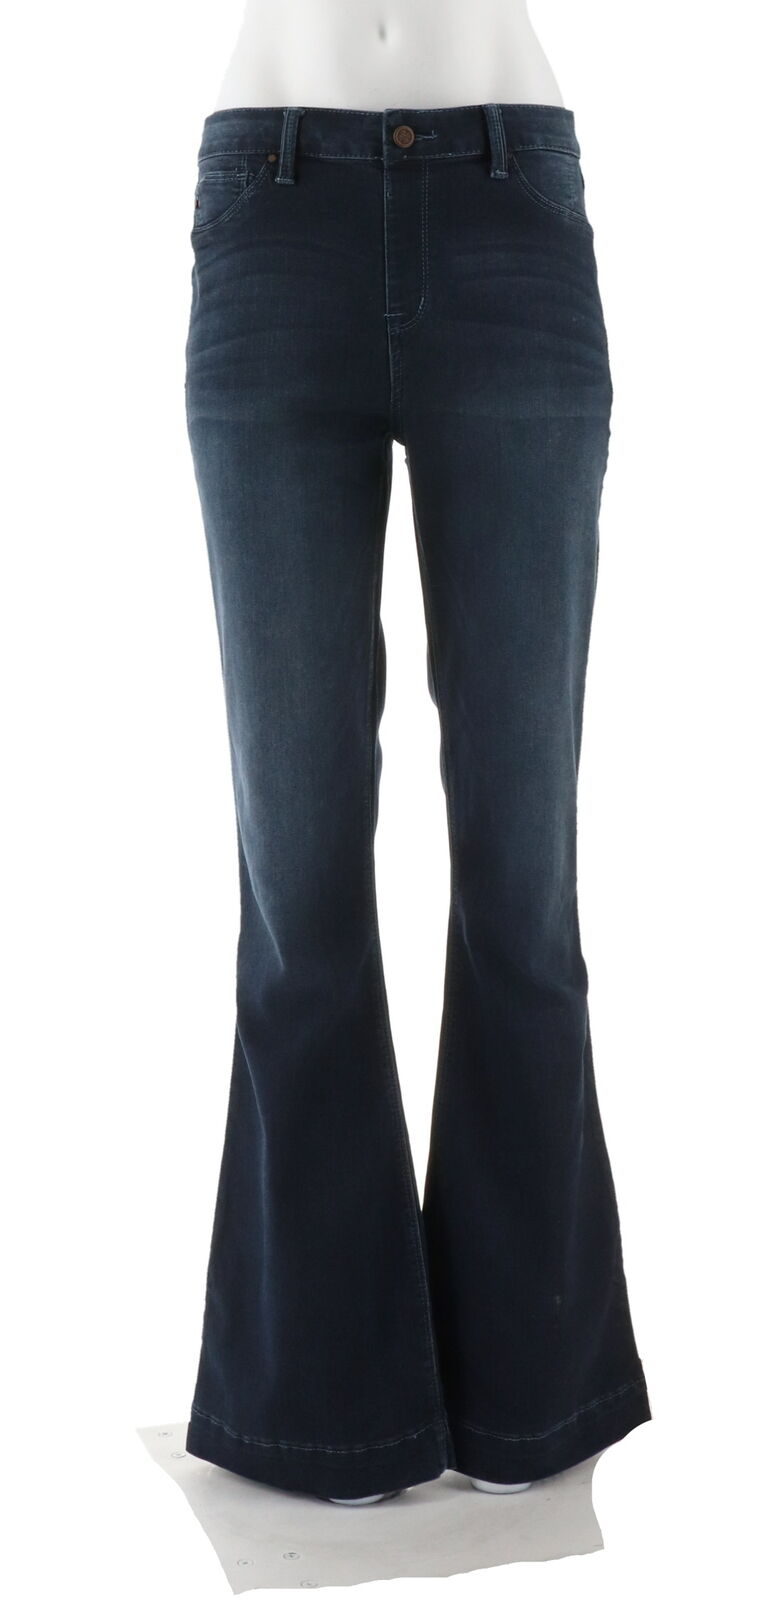 Laurie Felt Tall Silky Denim Flare Pull-On Jeans Brushed Pacific XS NEW A309676